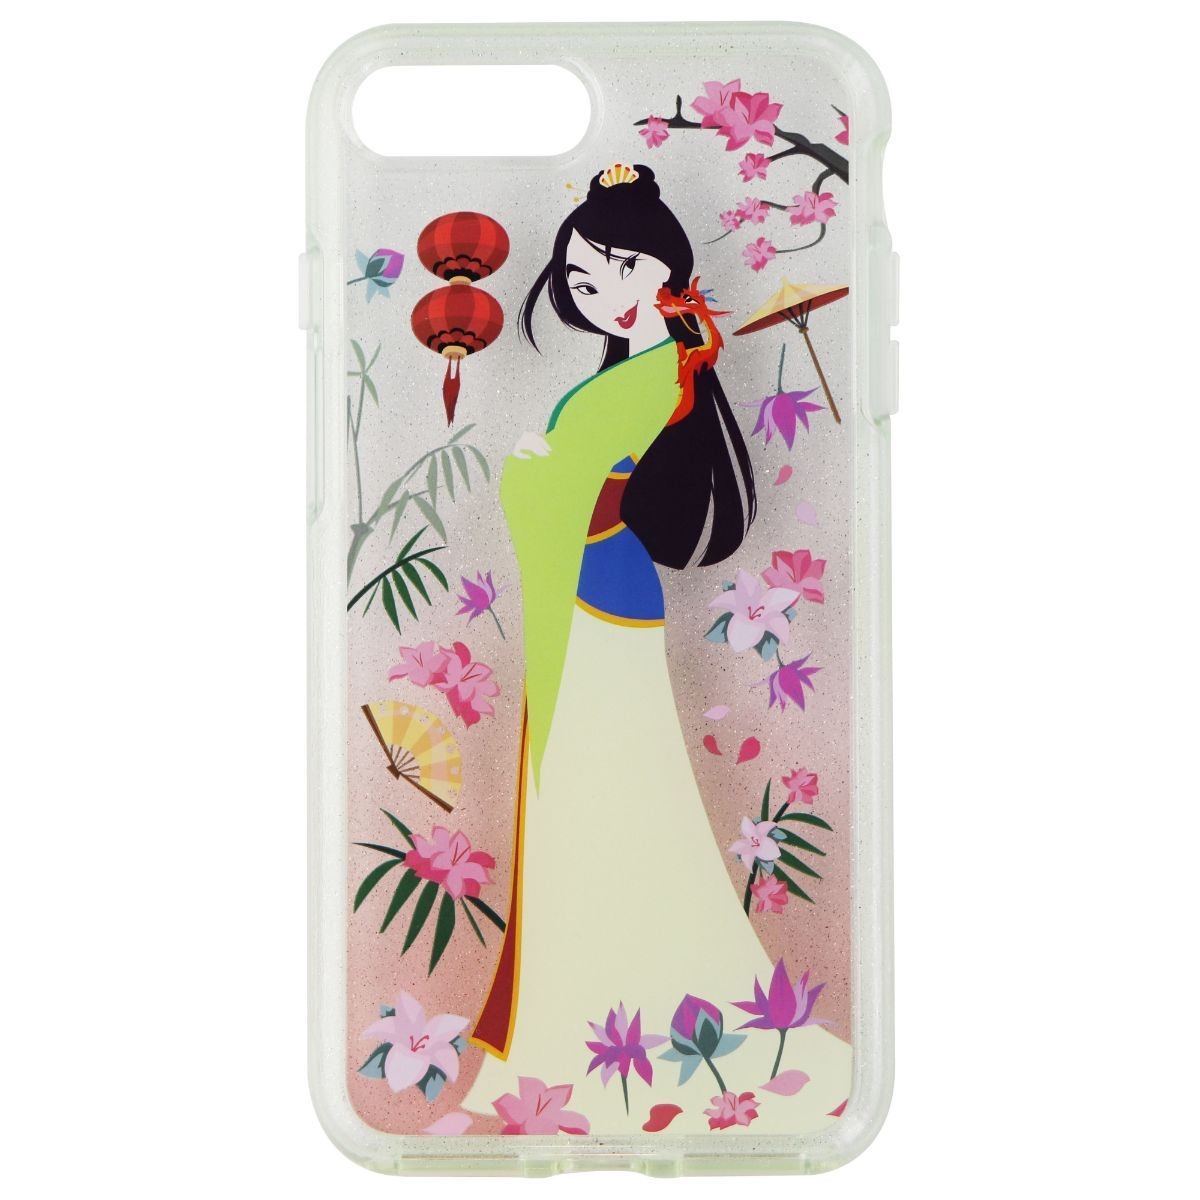 OtterBox Symmetry Case for Apple iPhone 8 Plus / 7 Plus - Garden of Honor Mulan